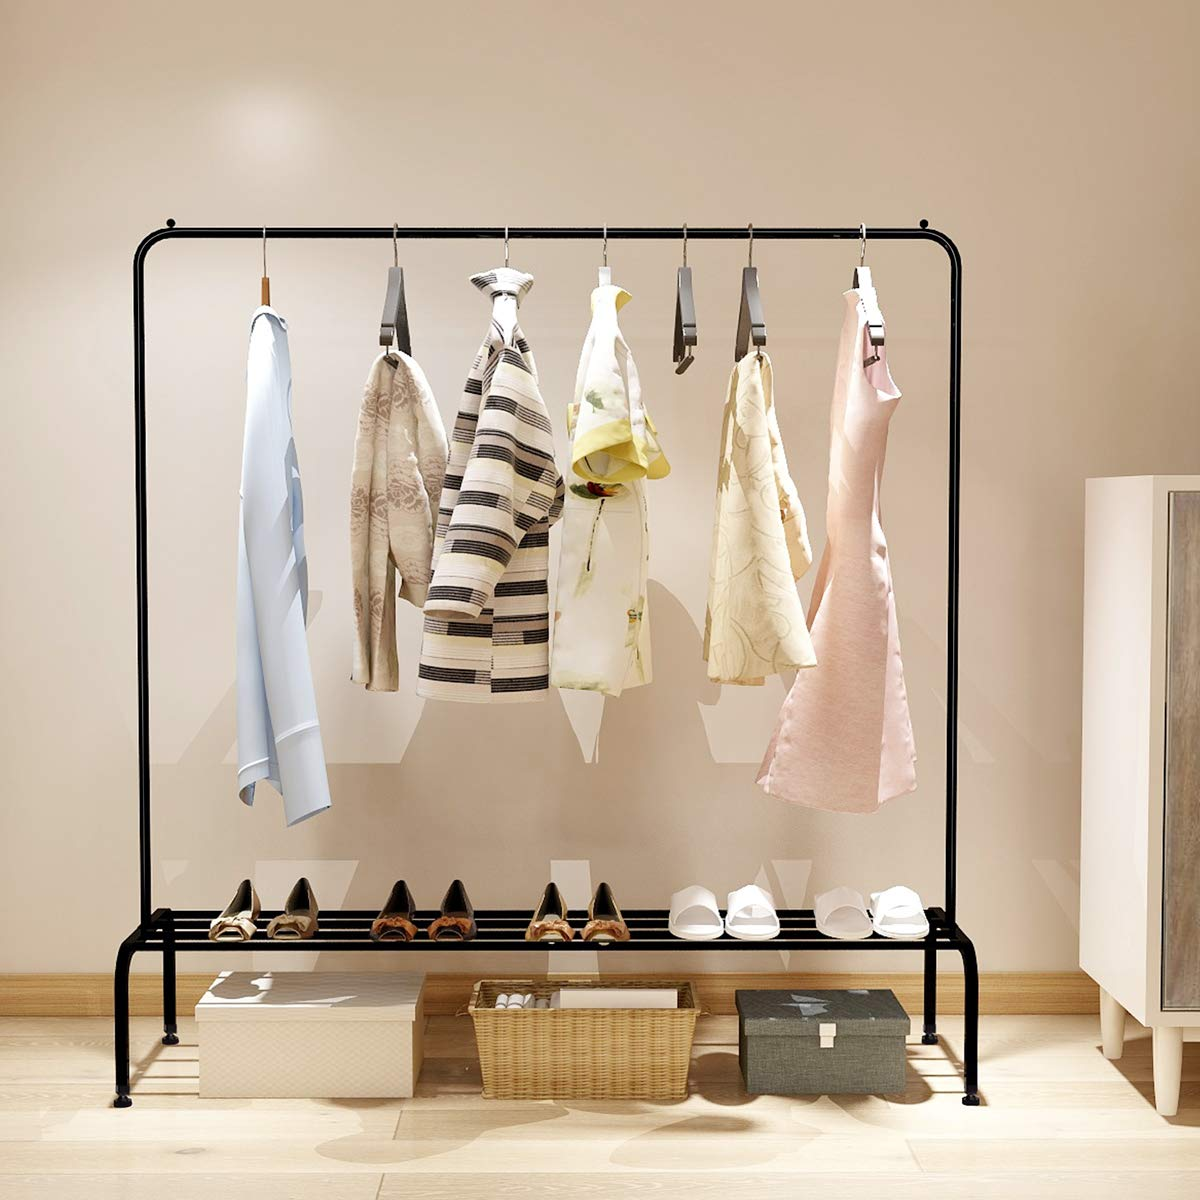 Metal Garment Rack Heavy Duty Indoor Bedroom Clothes Coat Stand Shoes Rack with Top Rod and Lower Storage Shelf Clothes Rack with 1-Tier Shelves Black